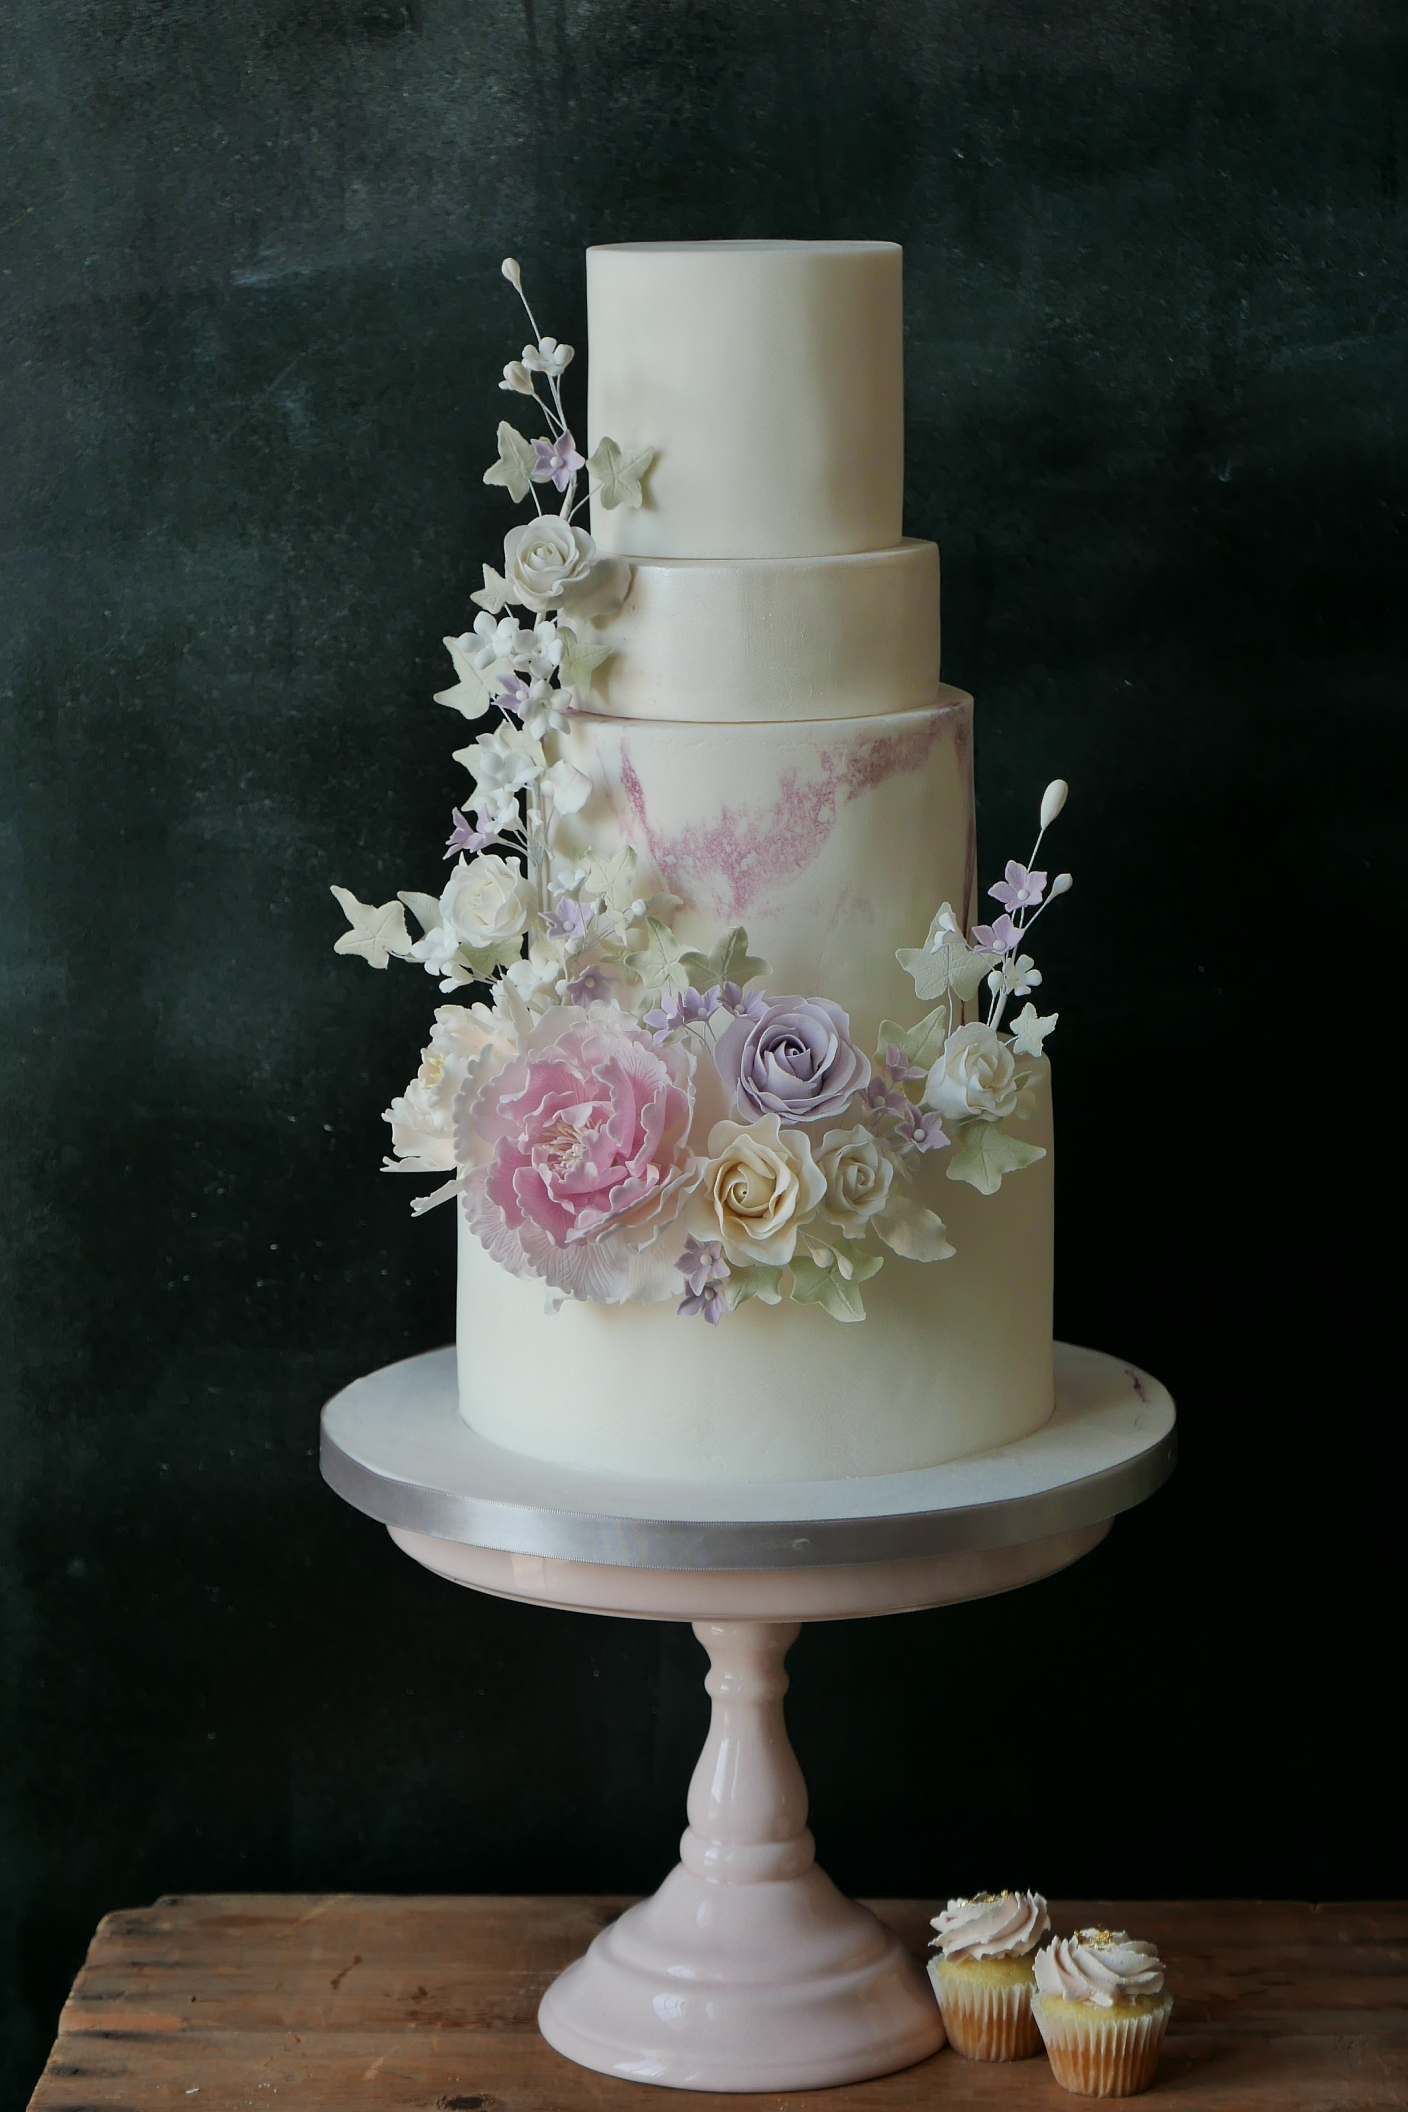 Wedding Cake by Flower & Flour Cake Design, Gusta Cooking Studio